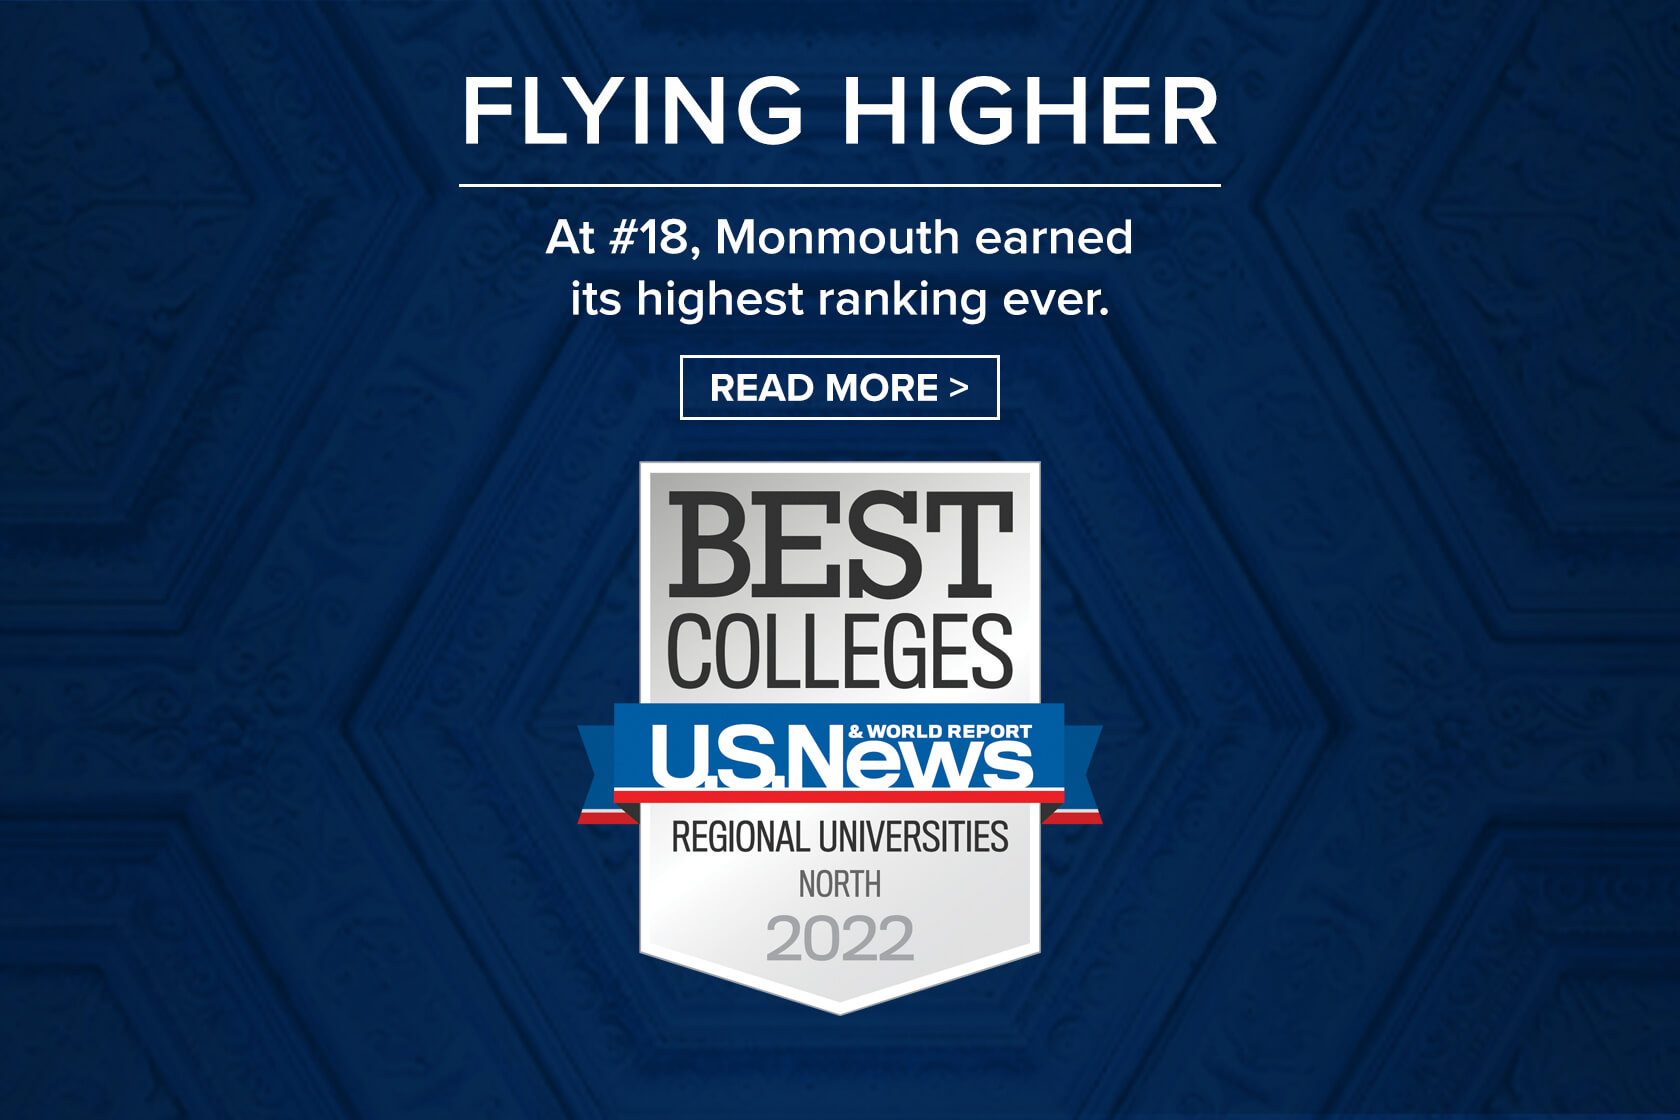 Flying Higher, at #18 Monmouth earned its highest ranking ever. U.S. News Best Colleges Regional Universities North 2022